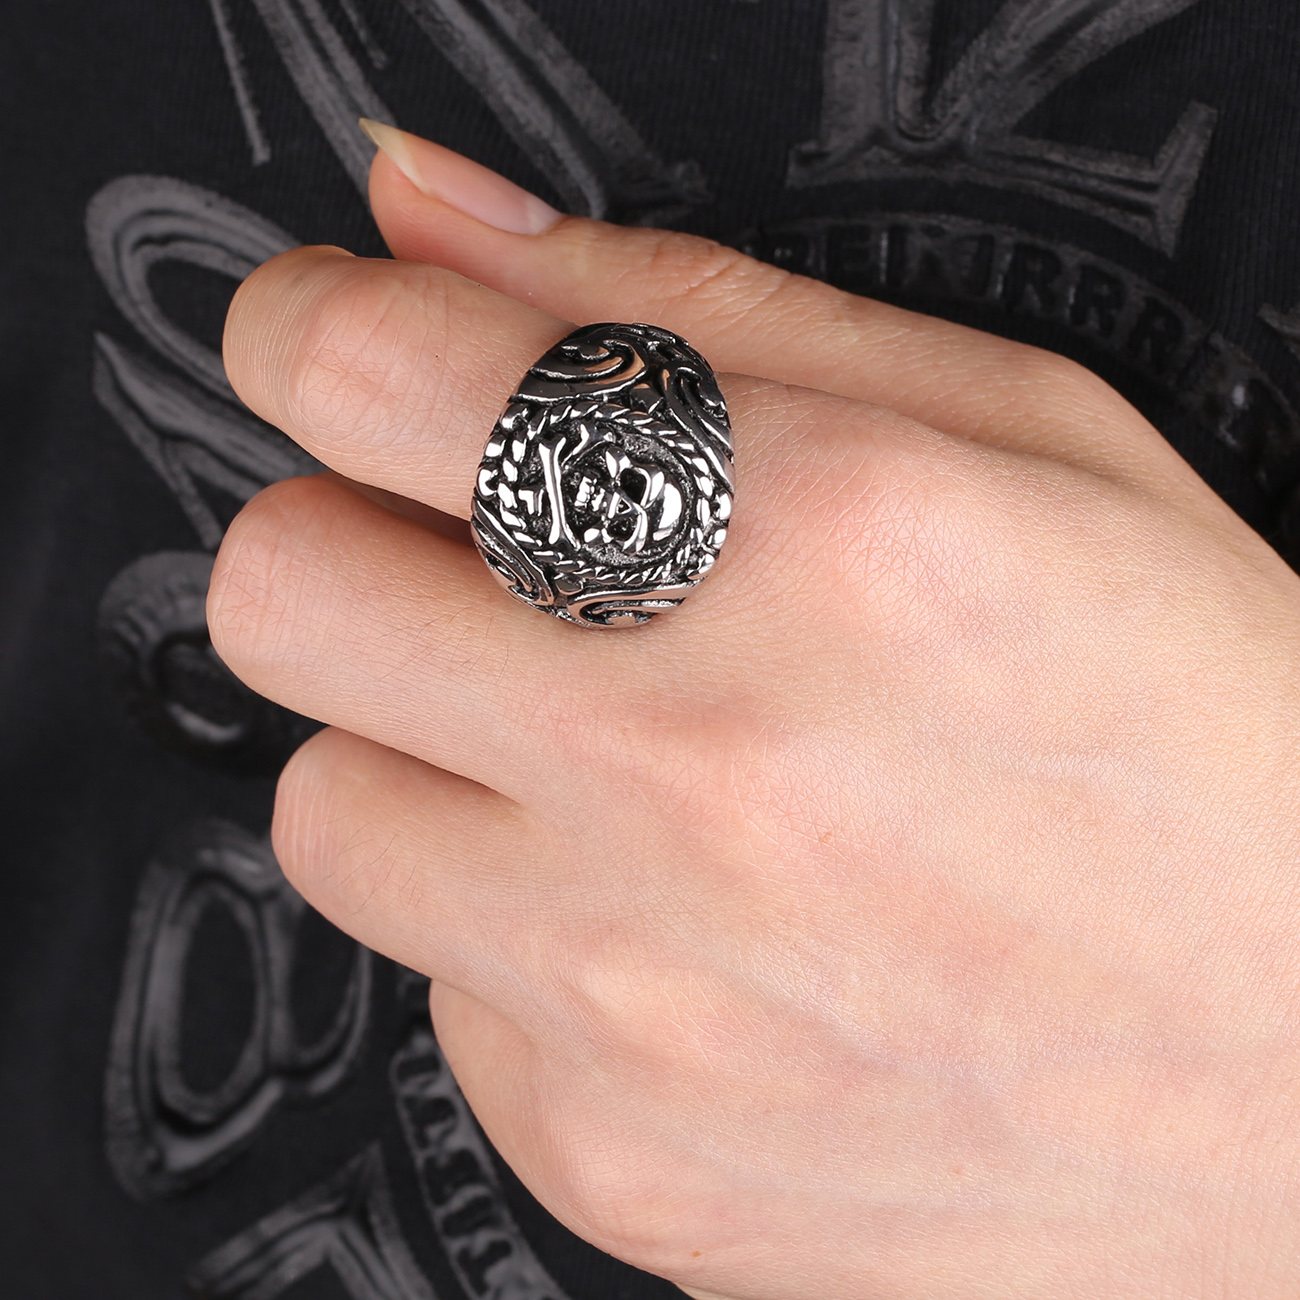 hot product rings sales halloween silver jewelry punk plated skeleton